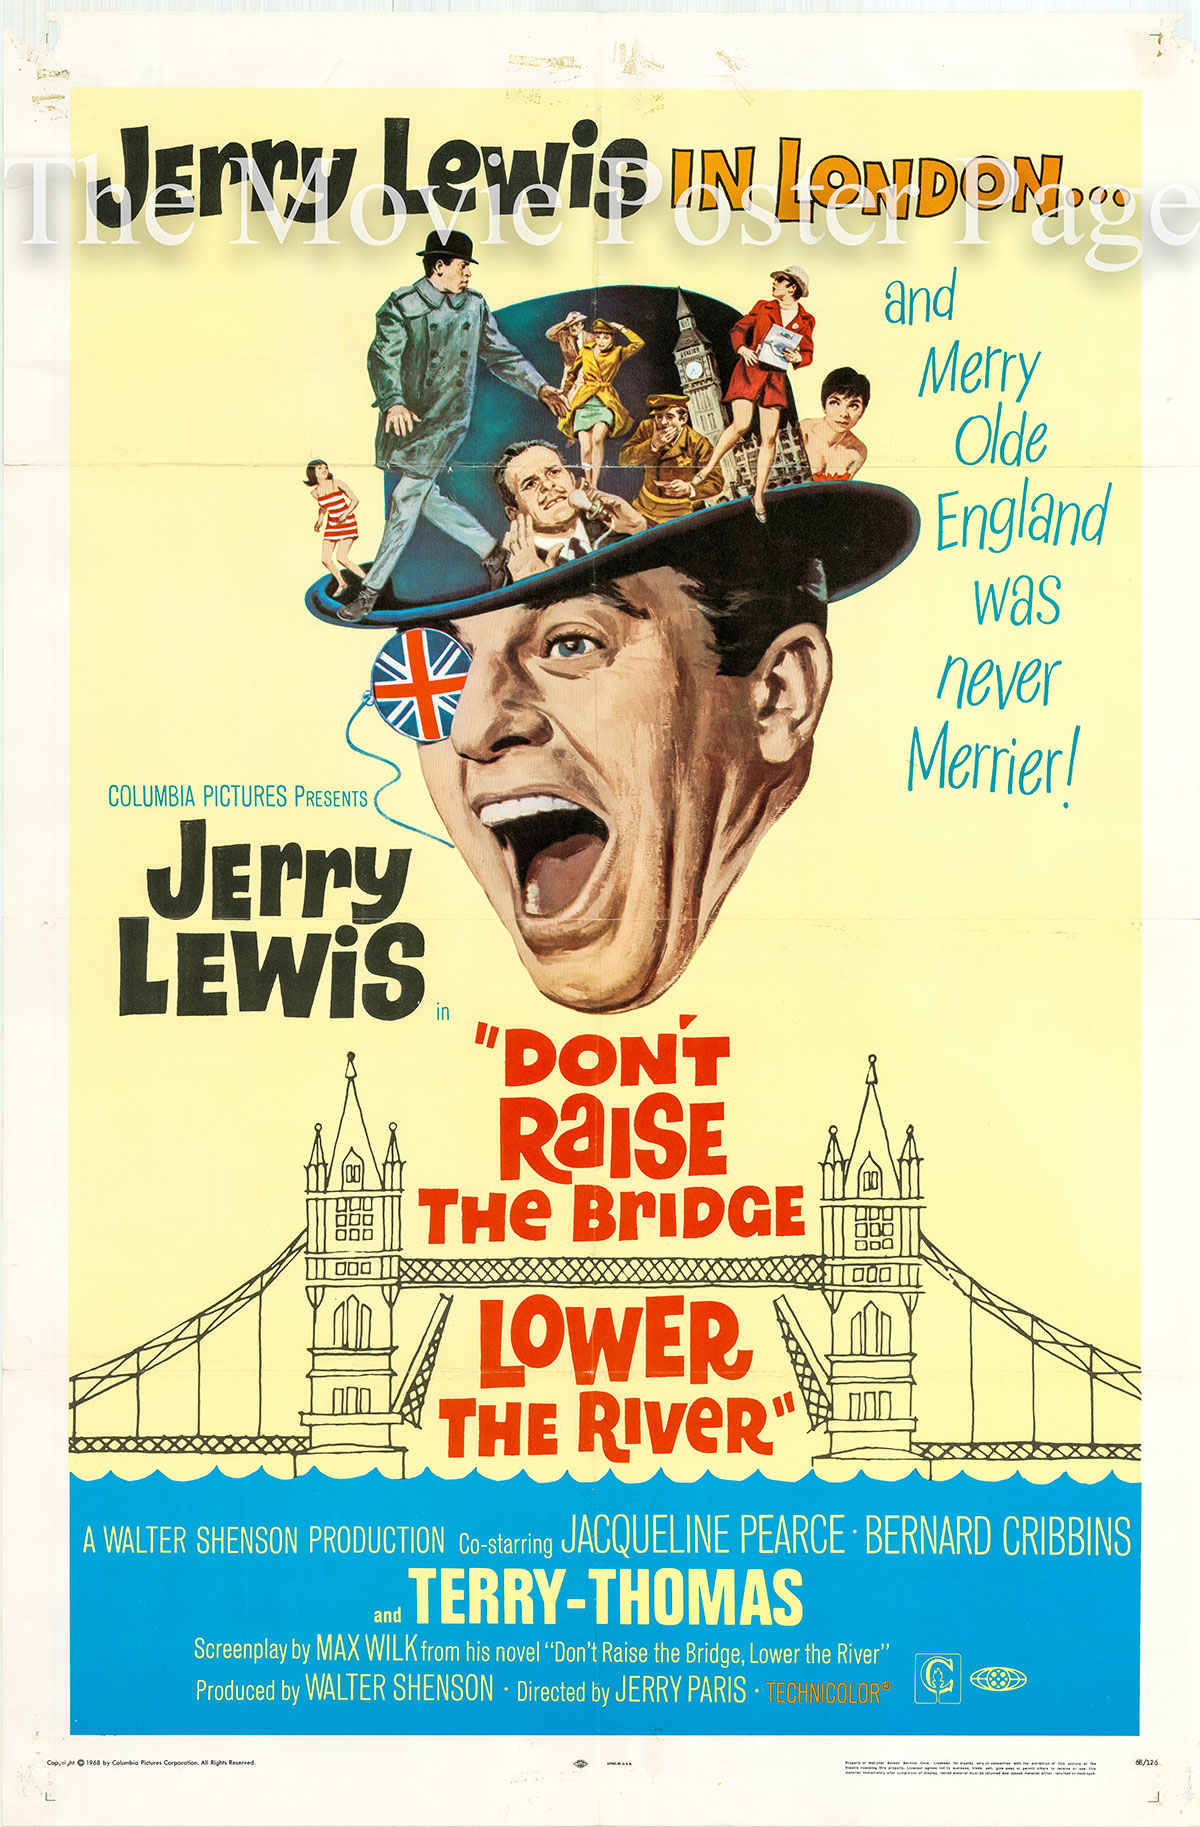 Pictured is a US one-sheet promotional poster for the 1968 Jerry Paris film Don't Raise the Bridge Lower the River starring Jerry Lewis.